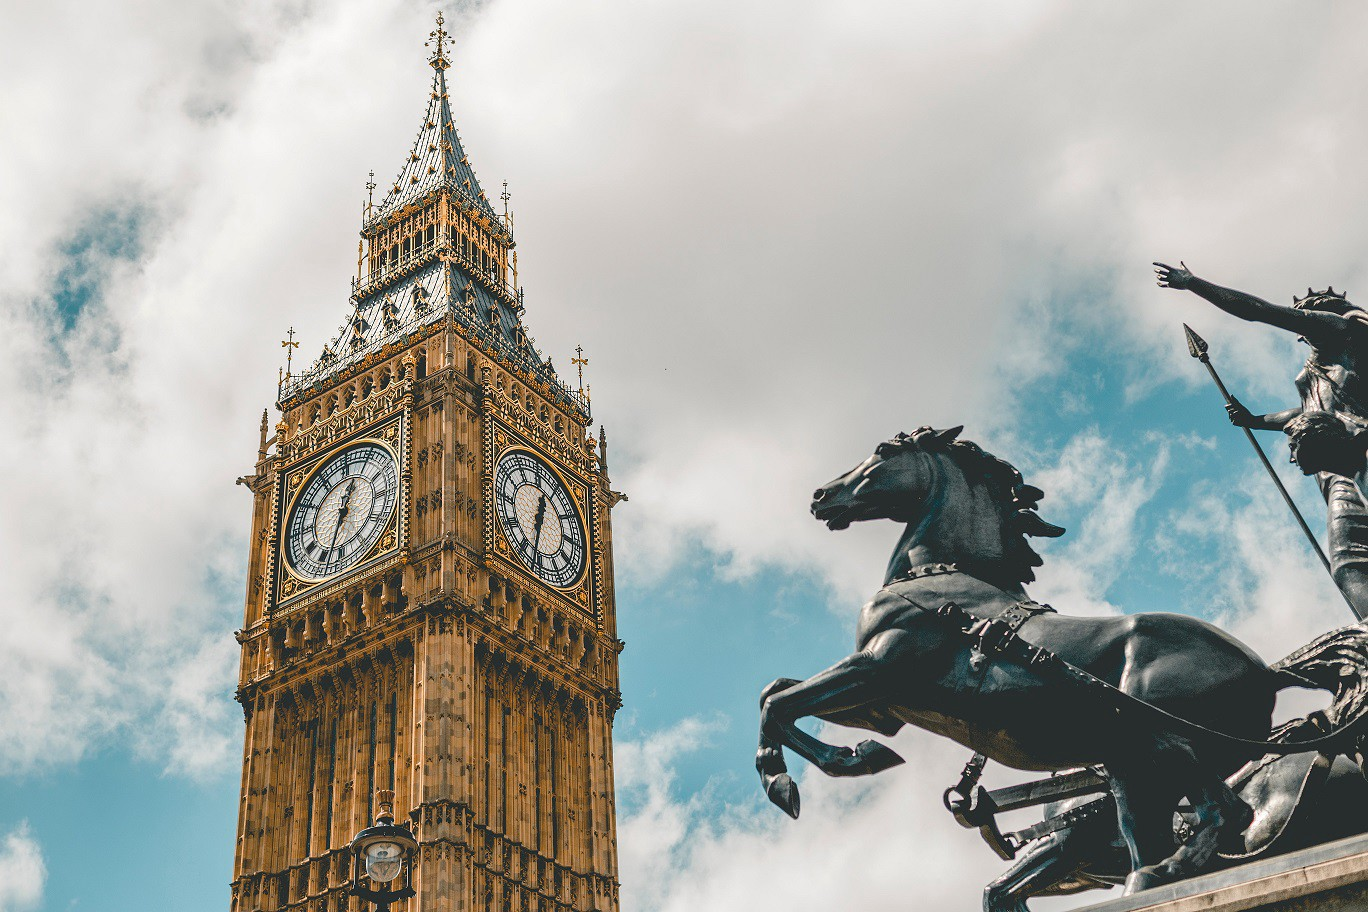 Big Ben in London and Boudicca statue